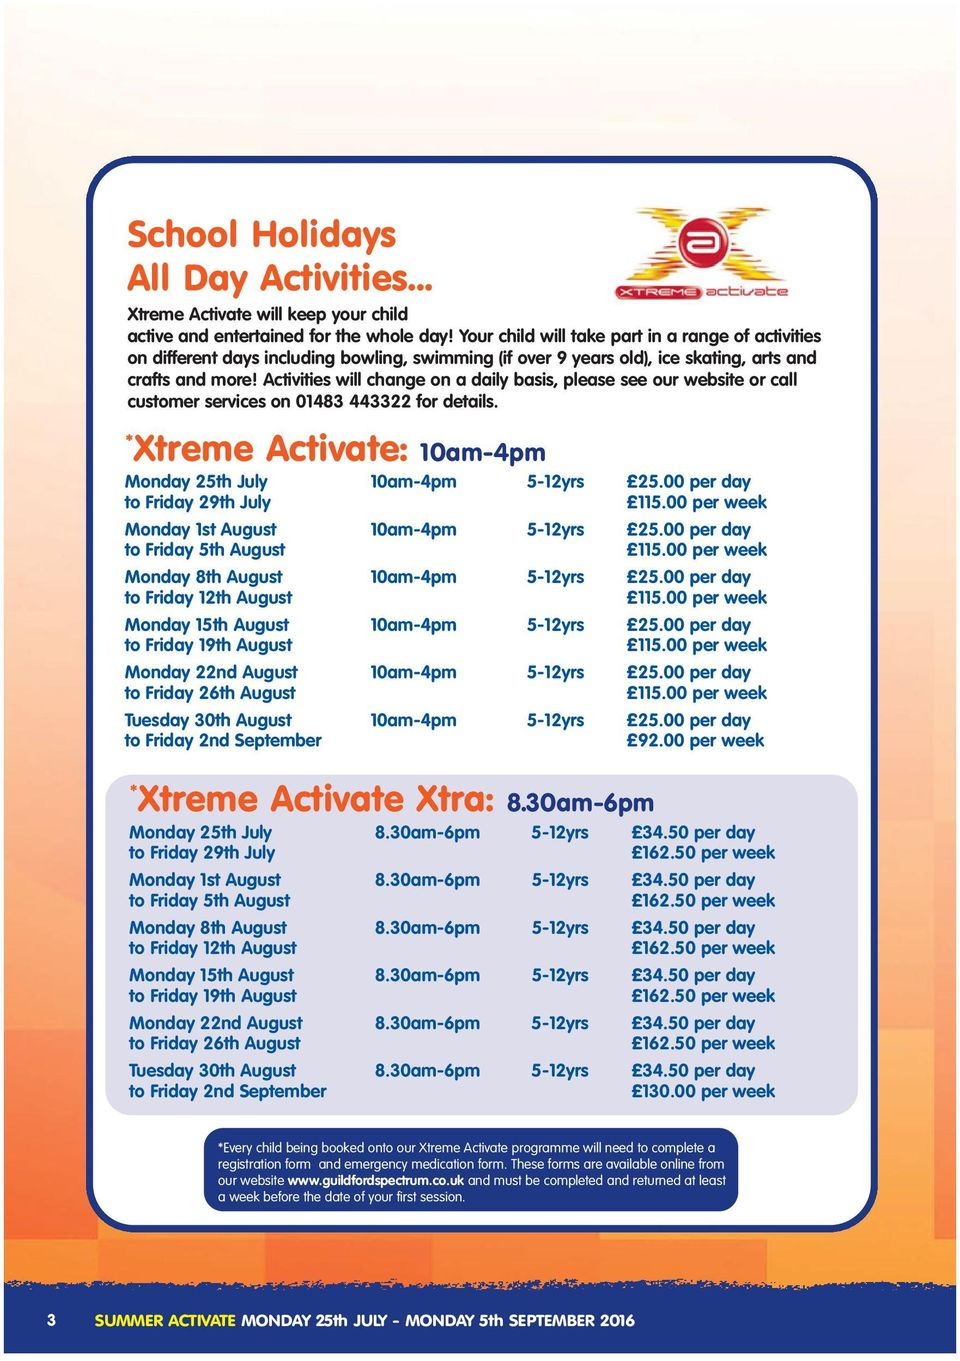 Activities will change on a daily basis, please see our website or call customer services on 01483 443322 for details. * Xtreme Activate: 10am-4pm Monday 25th July 10am-4pm 5-12yrs 25.